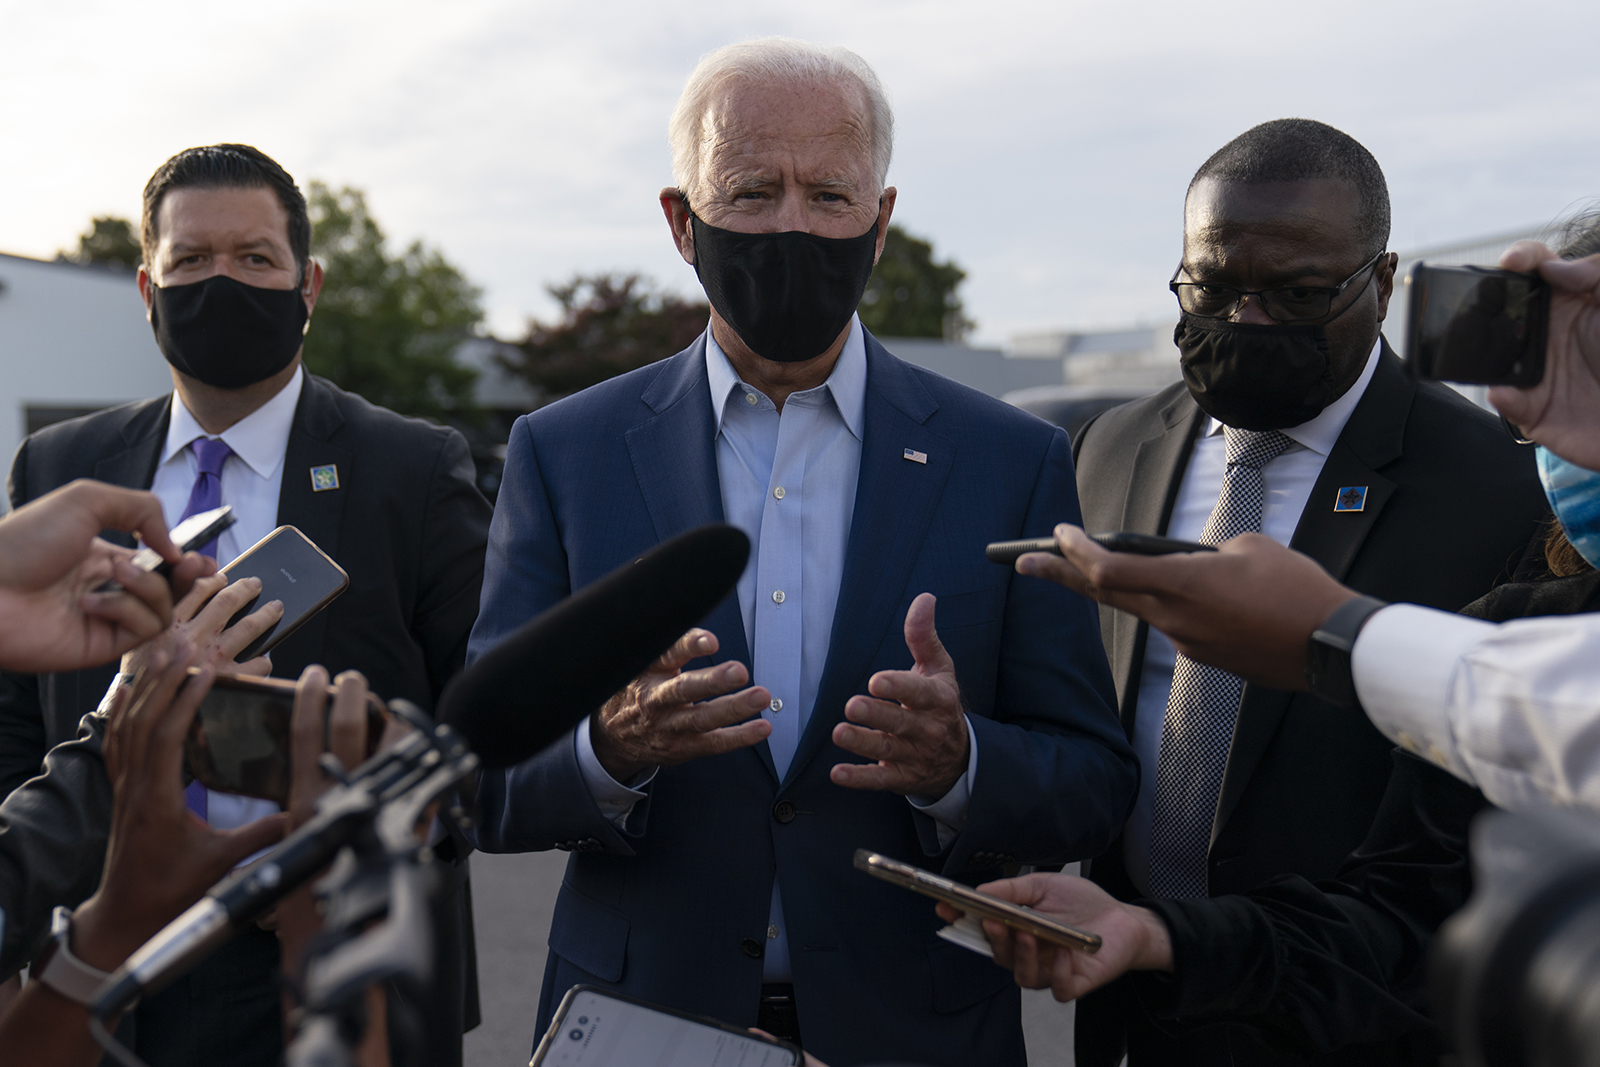 Democratic presidential nominee Joe Biden, flanked by members of his Secret Service detail, speaks to media about the Breonna Taylor ruling and other topics before boards a plane at Charlotte Douglas International Airport in Charlotte, North Carolina on Wednesday.